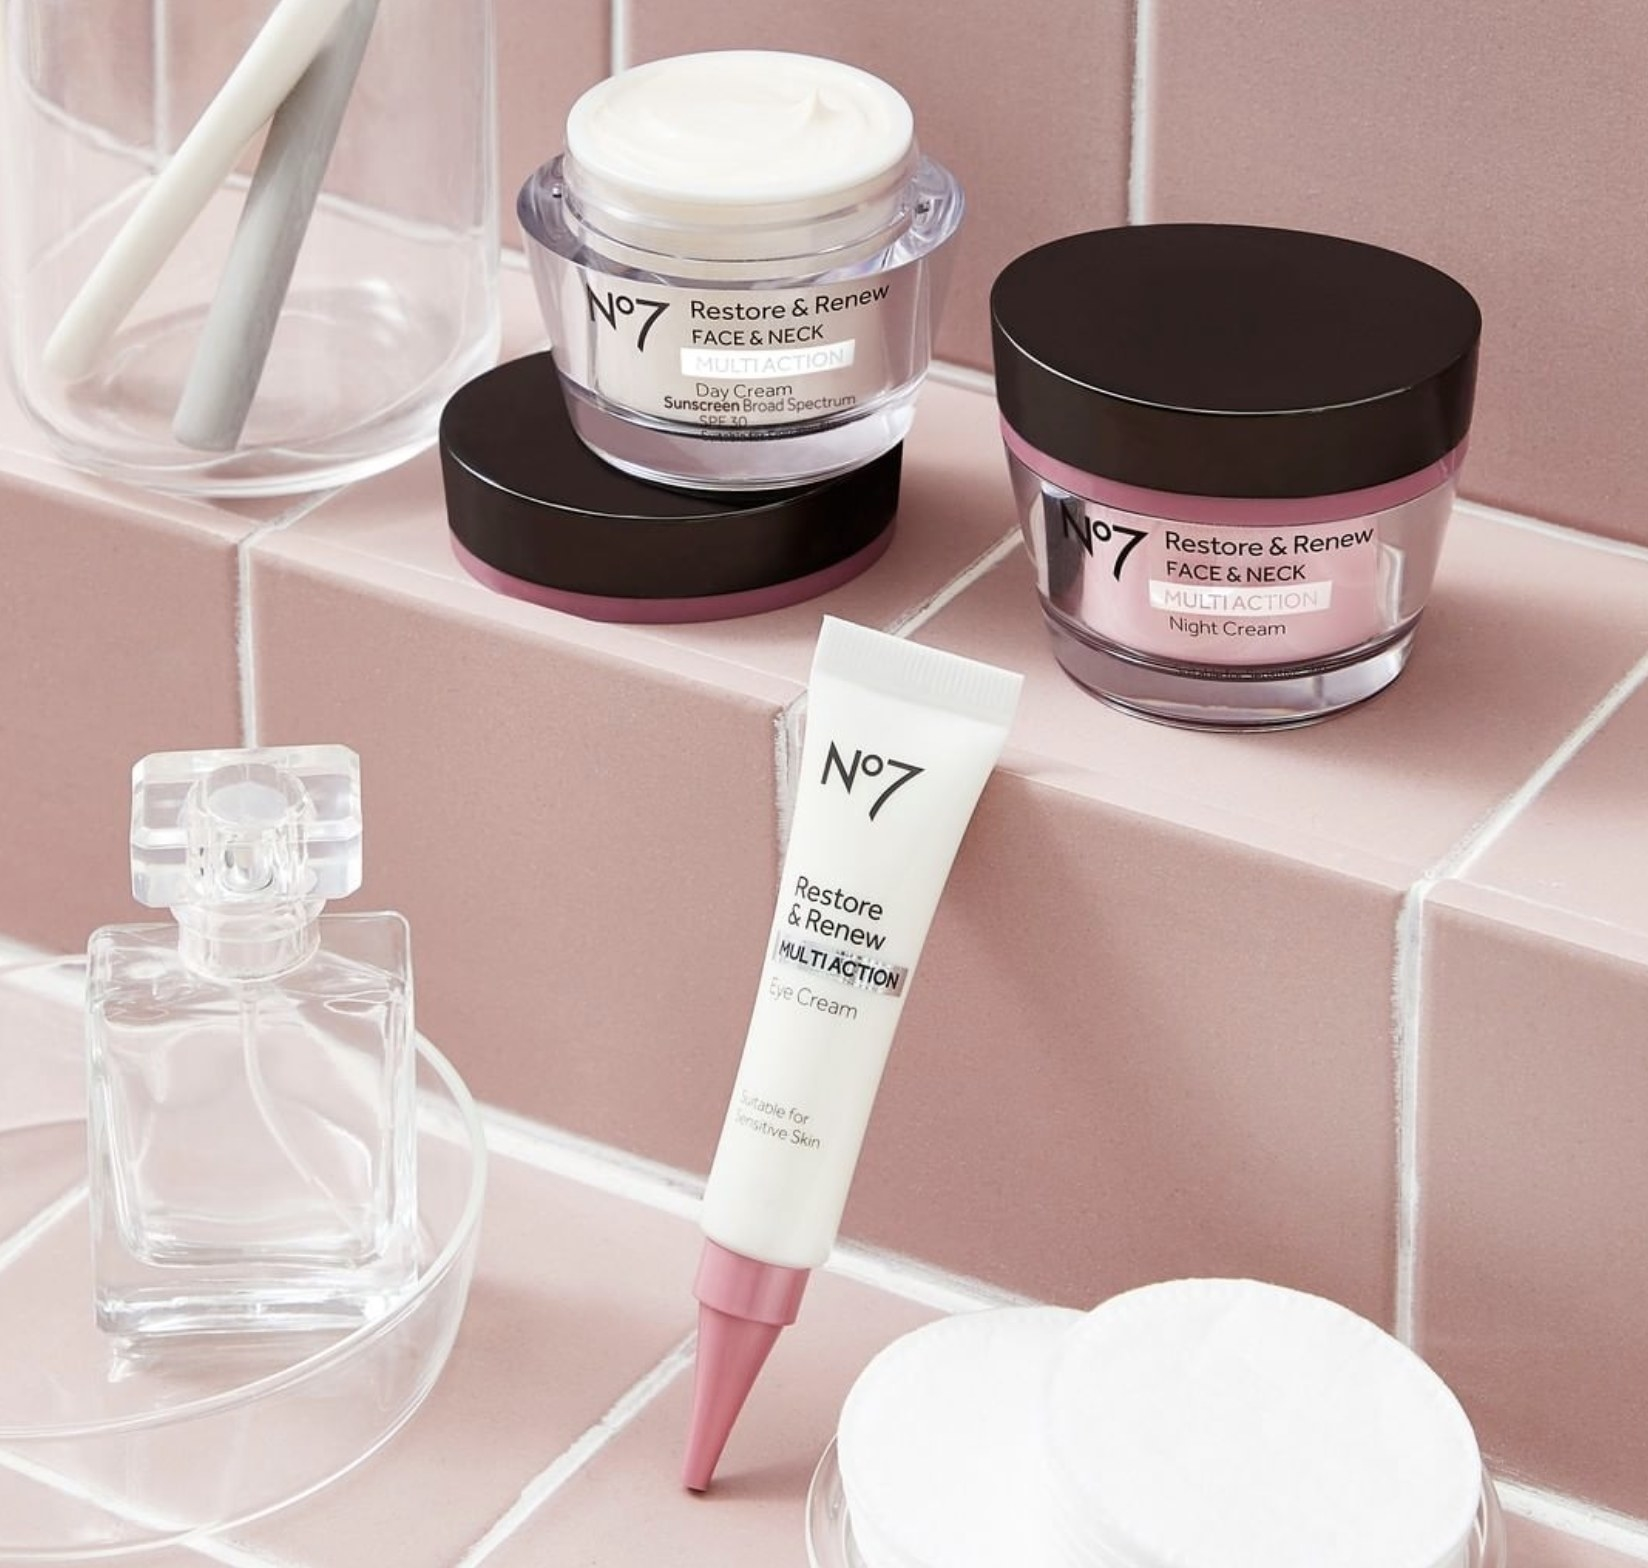 Skincare products in jars and tubes in a bathroom setting